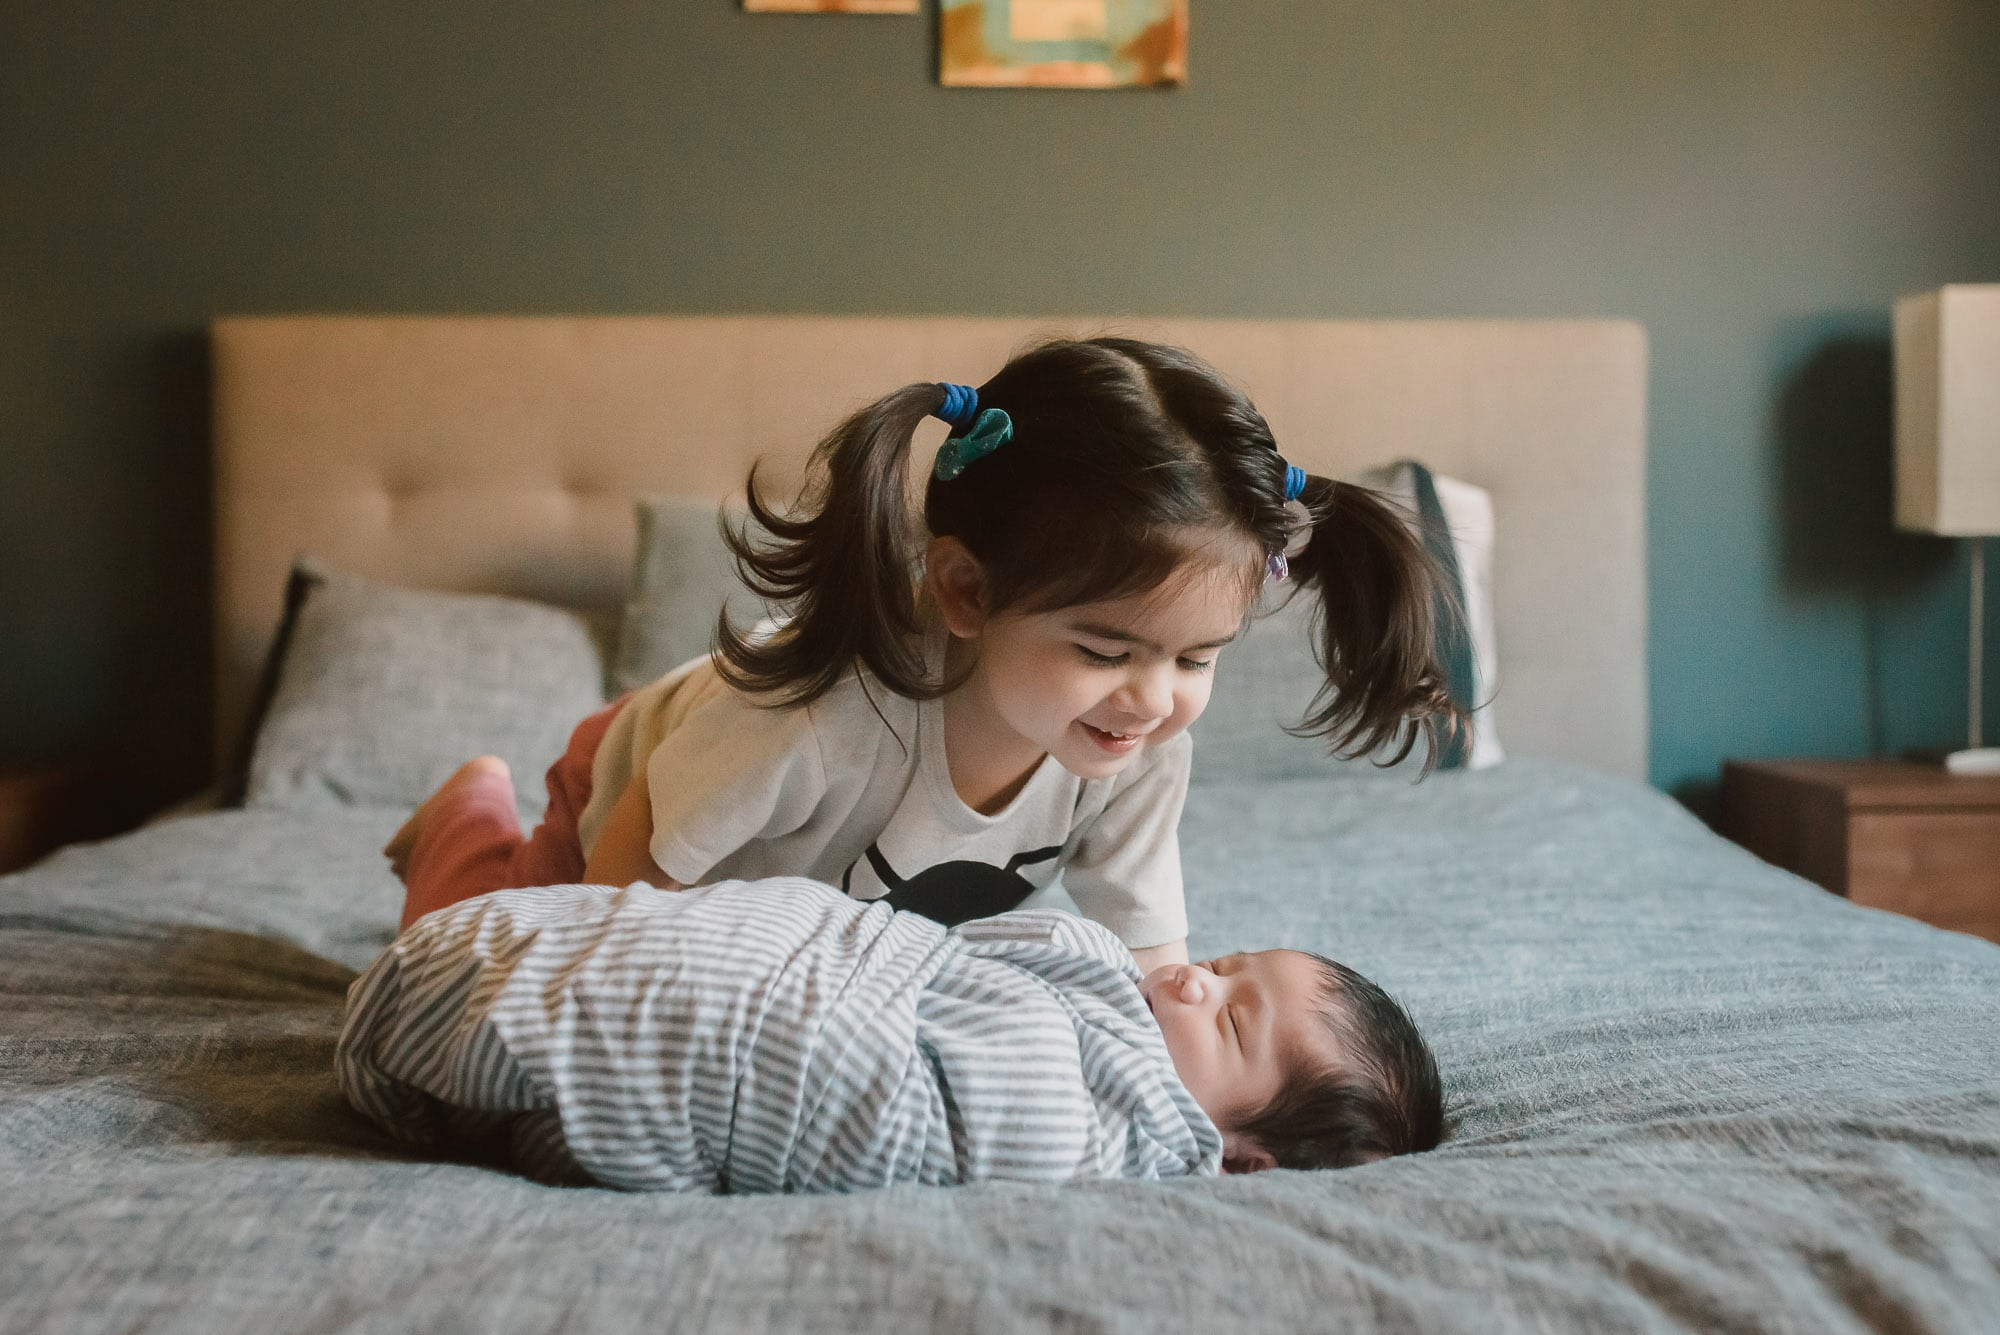 sibling looks at newborn baby on bed during newborn photography session in port coquitlam